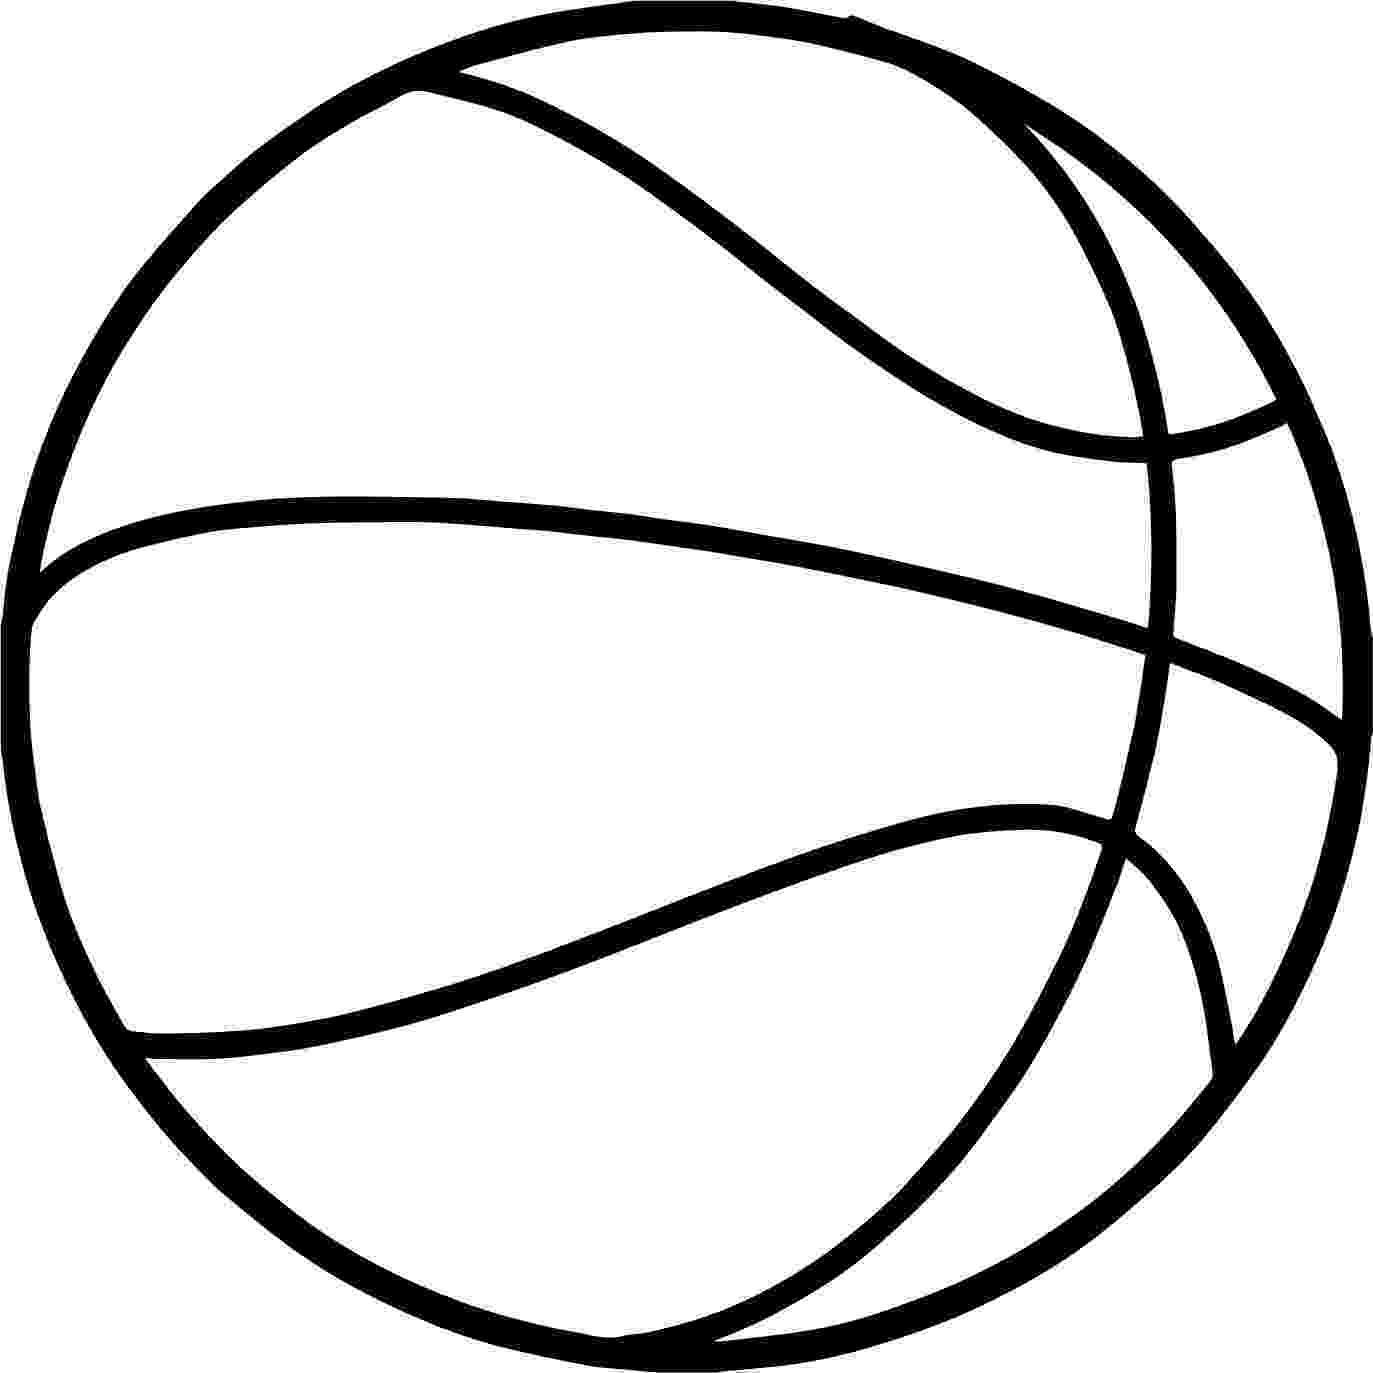 colouring sheet of ball fine basketball ball coloring page wecoloringpagecom sheet colouring of ball